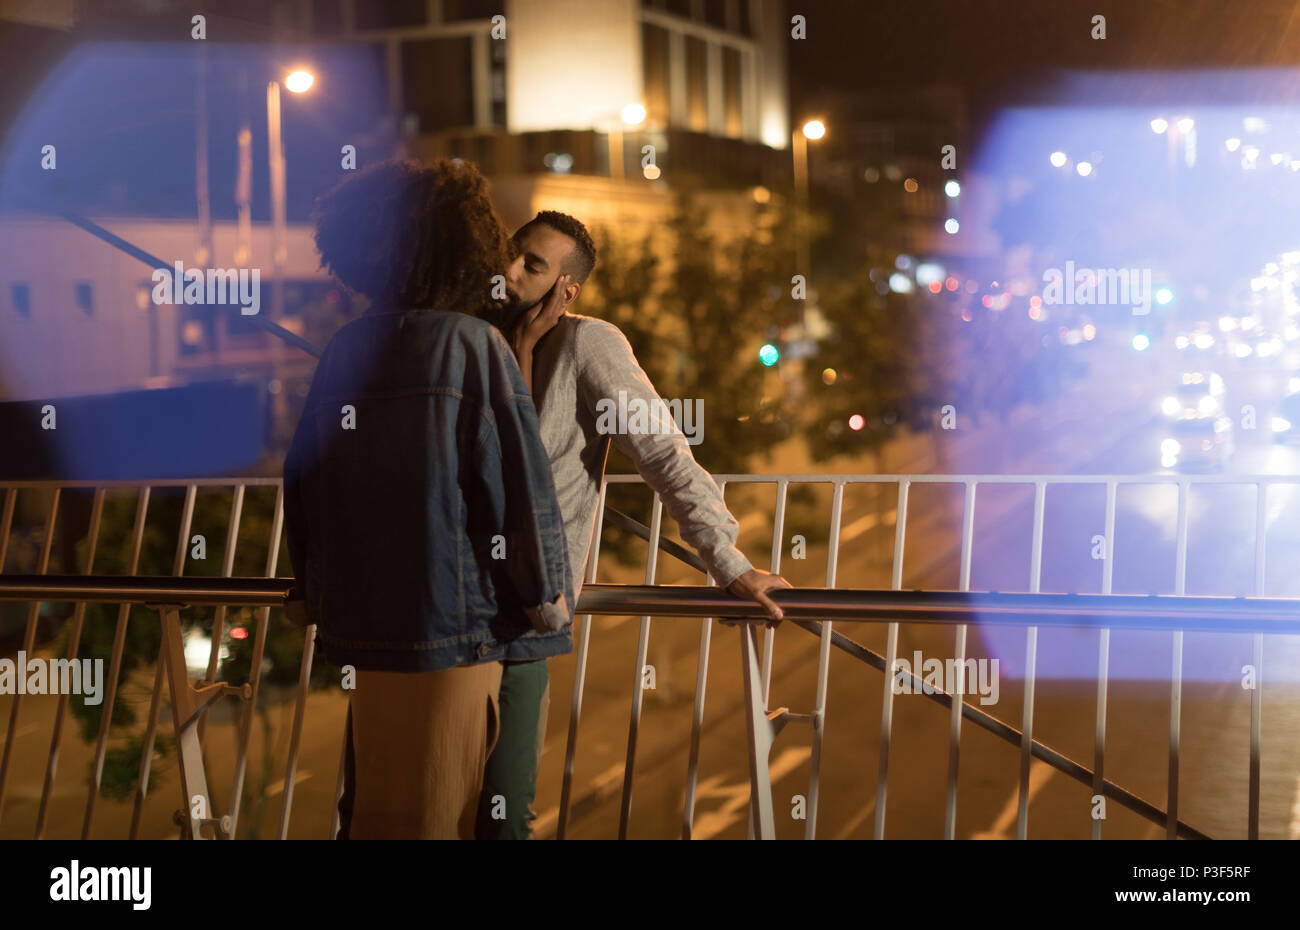 Couple kissing each other while standing near railing - Stock Image